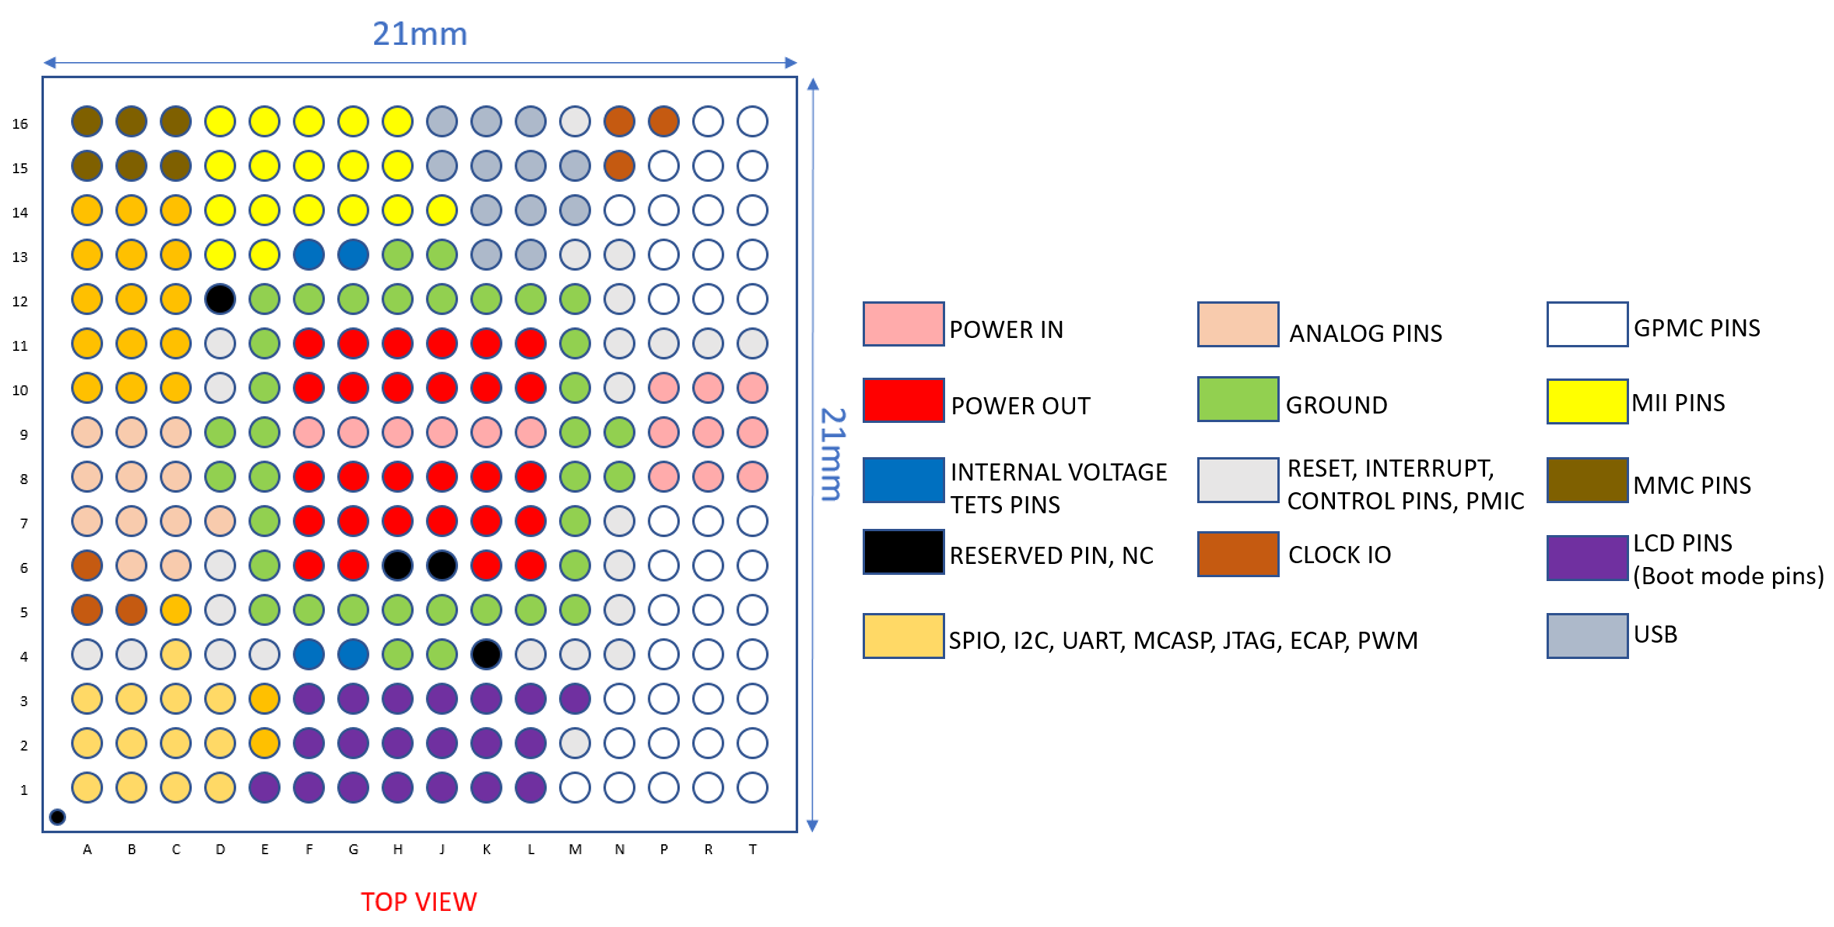 osd335x sm layout guide